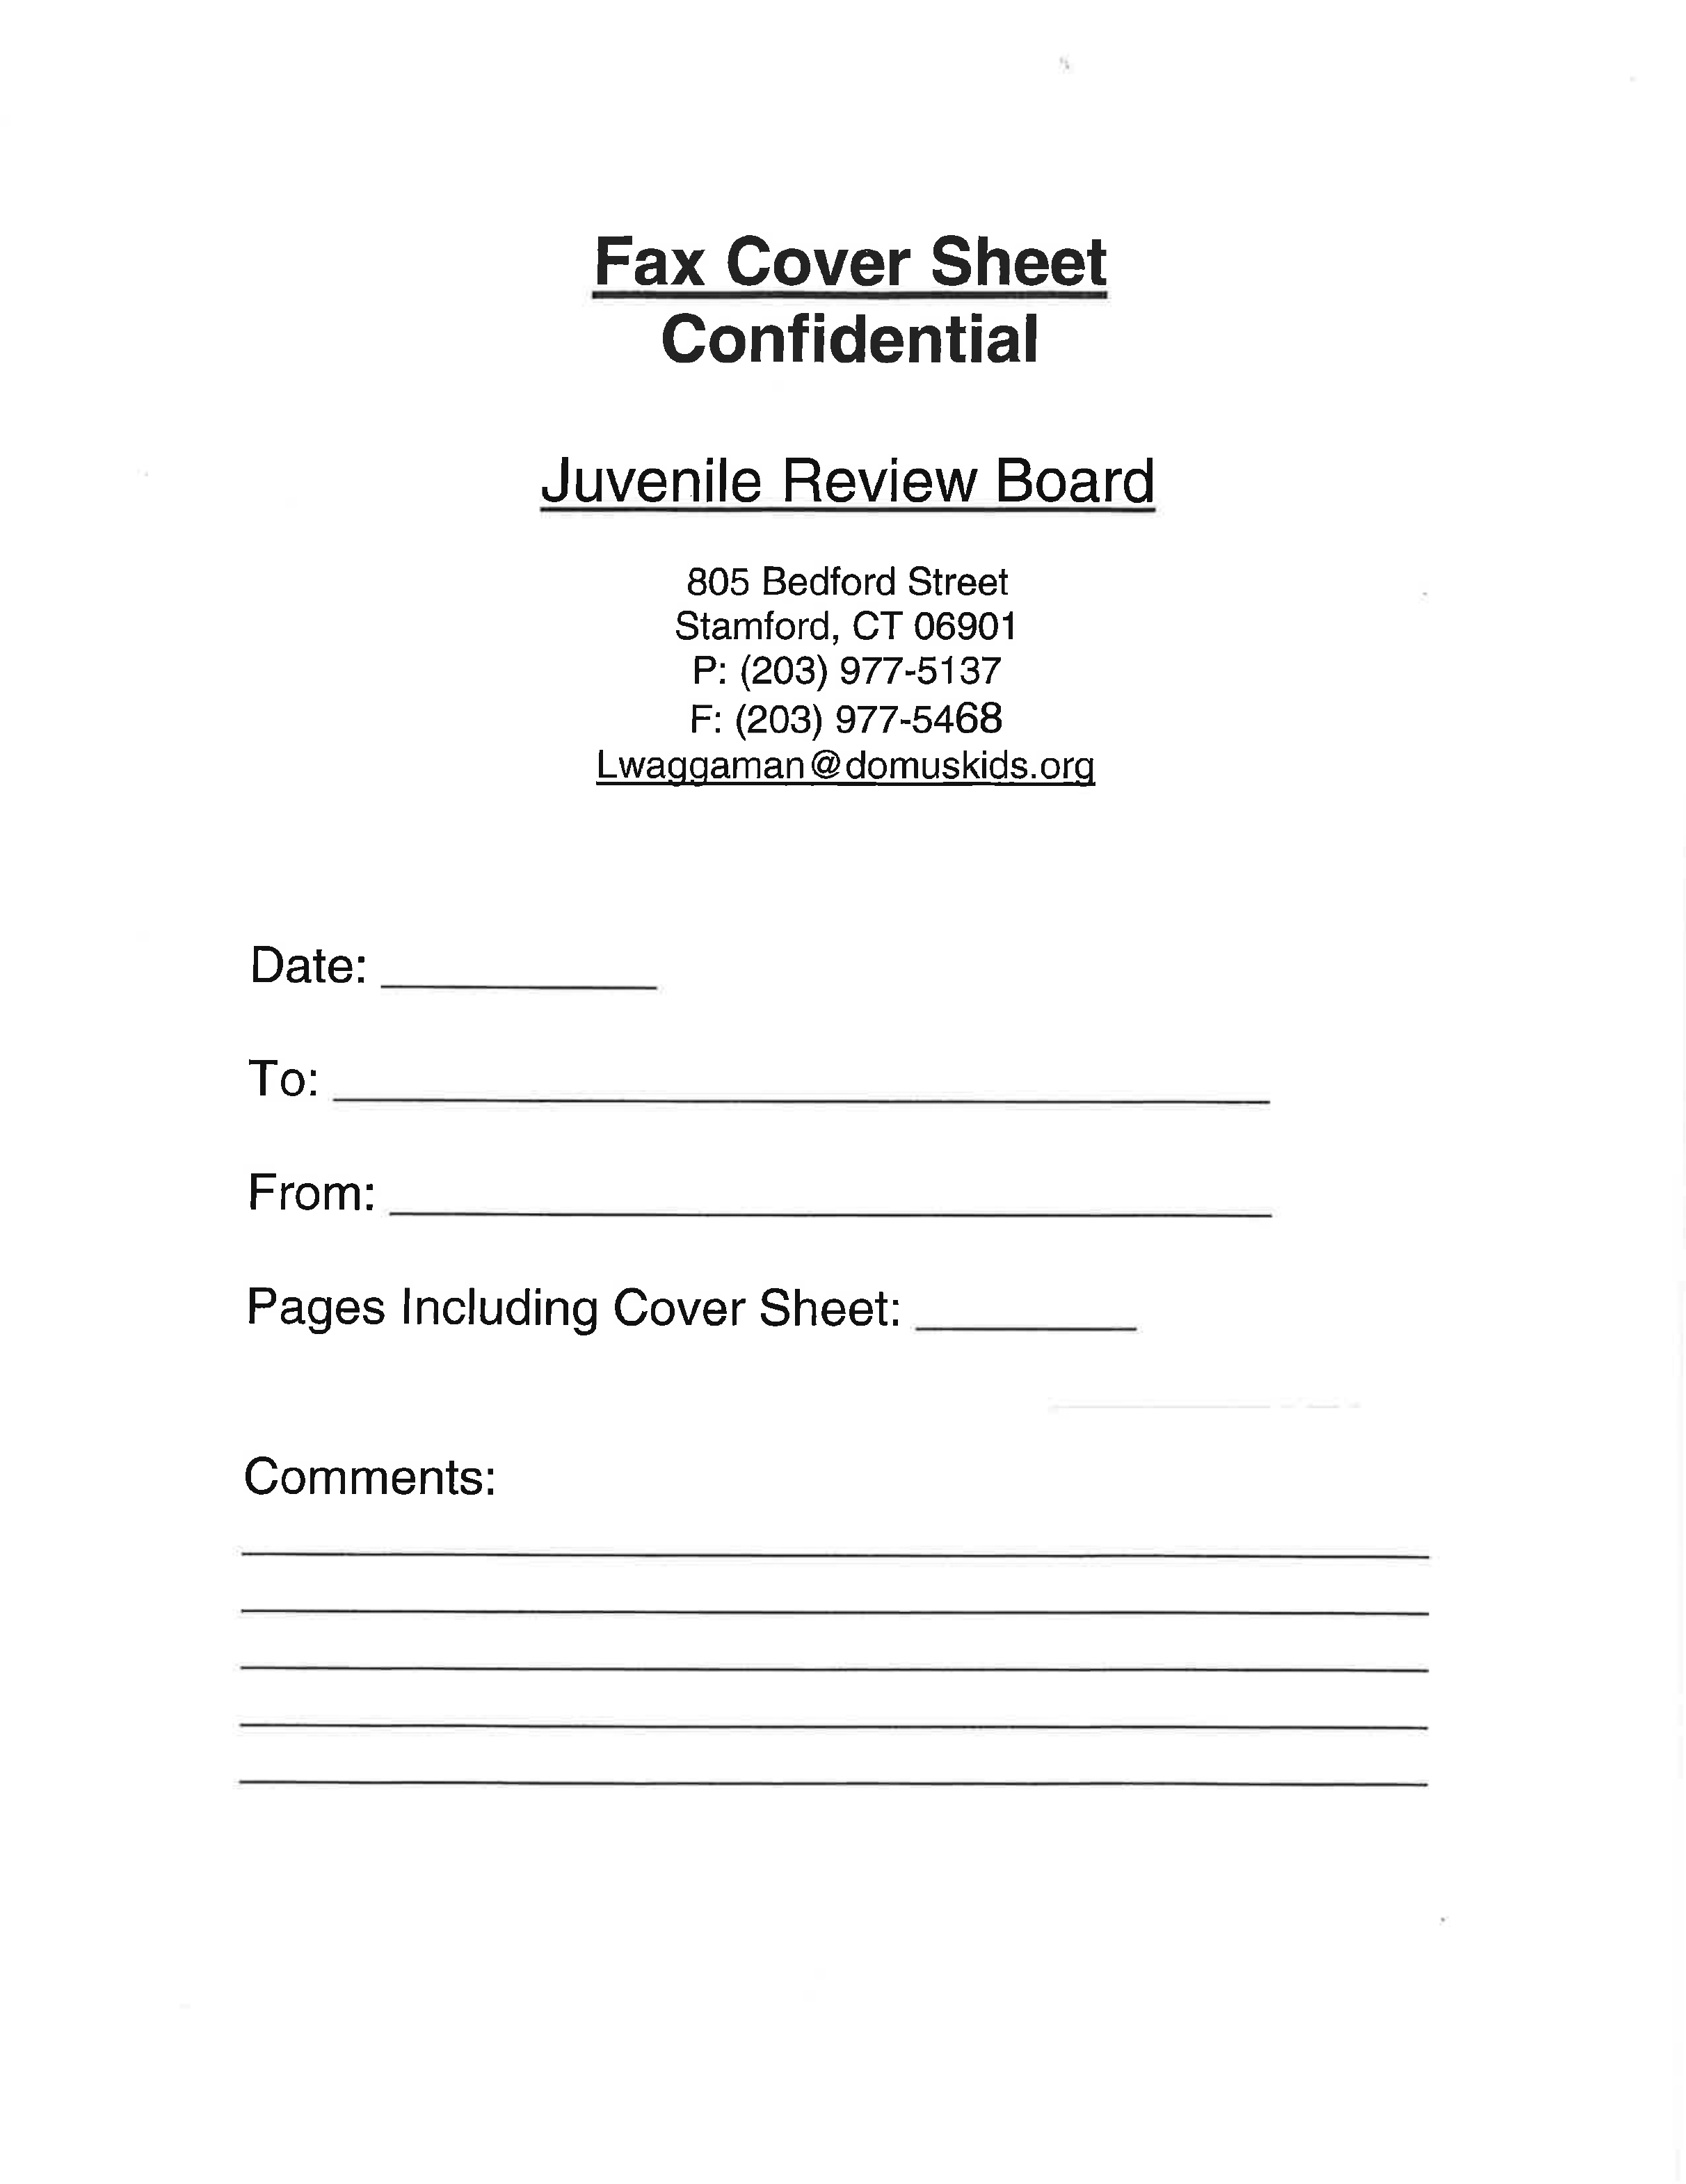 confidential fax cover sheet printable fax cover sheet 27 fax cover sheet confidential